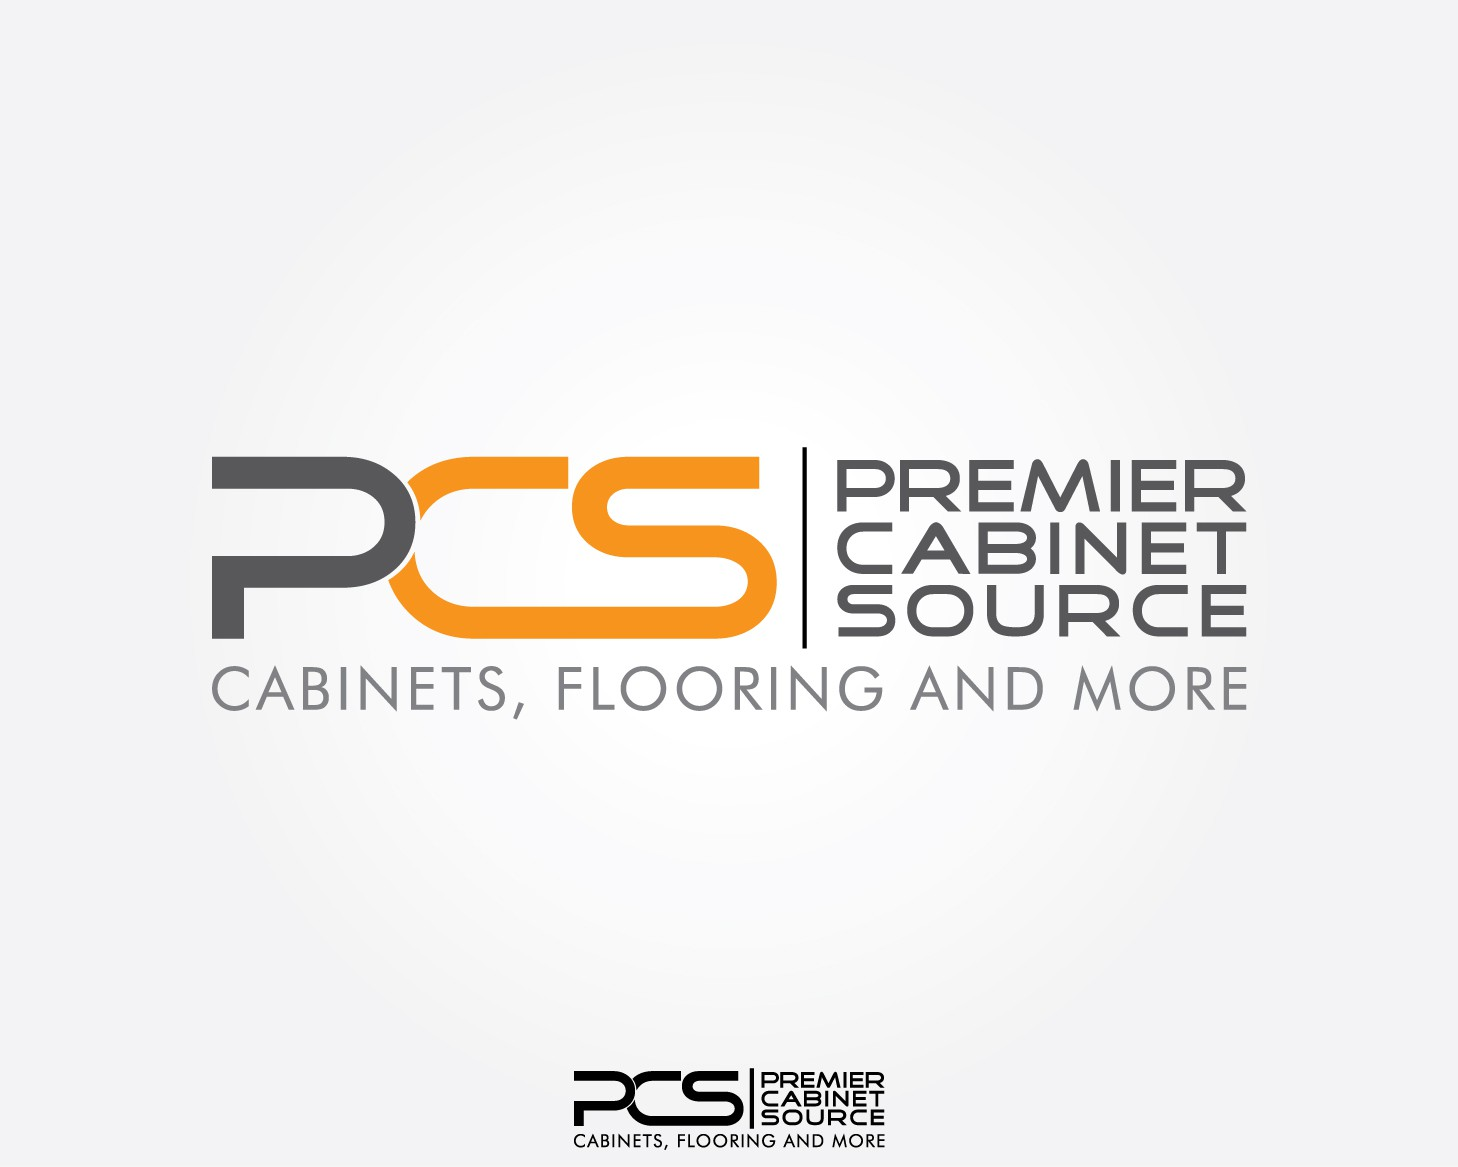 Help Premier Cabinet Source with a new logo